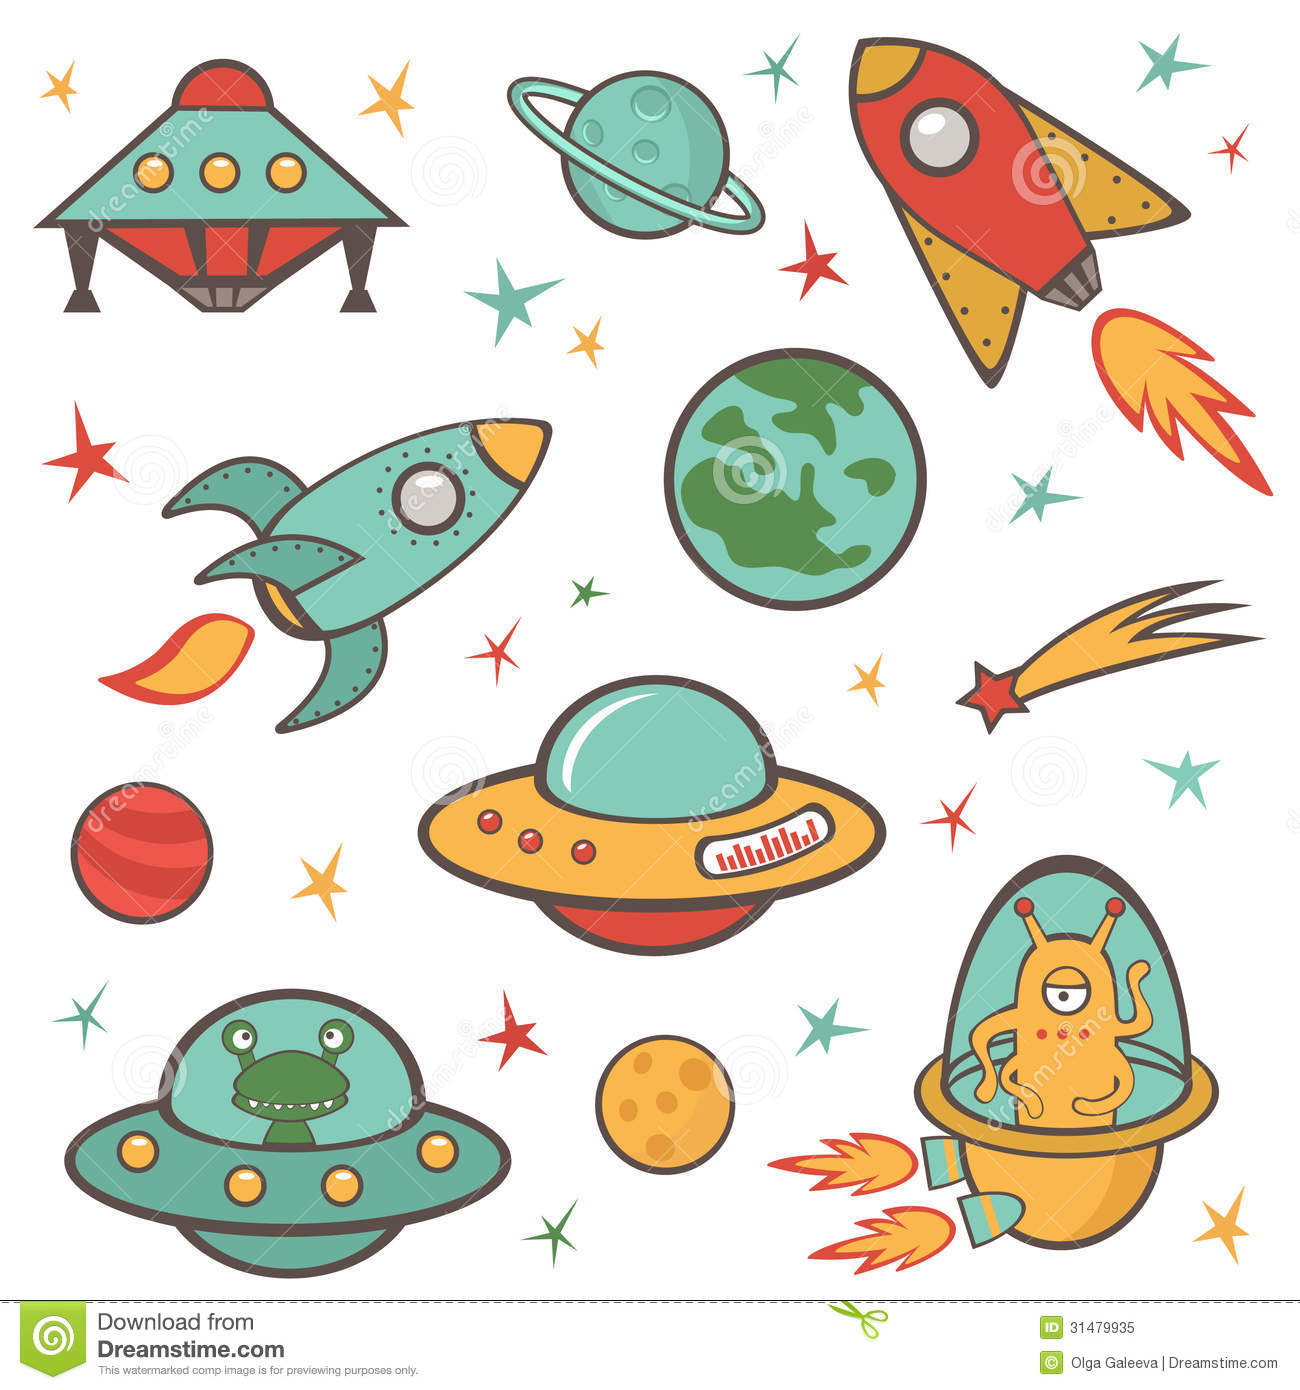 Outer space elements set stock vector illustration of for Outer space elements